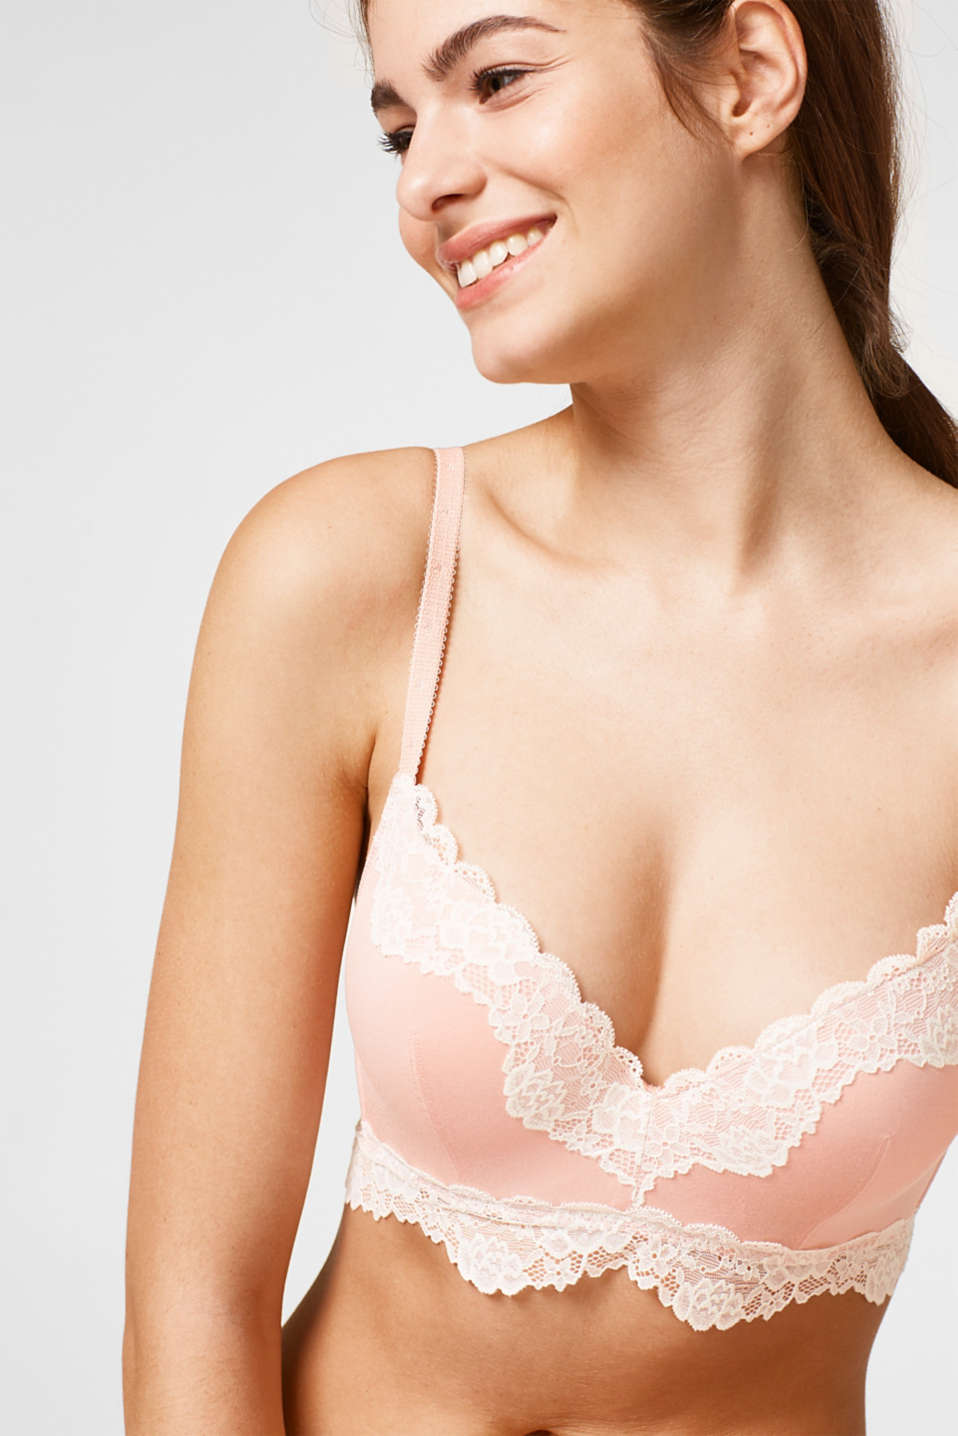 Esprit - Padded non-wired bra with lace details